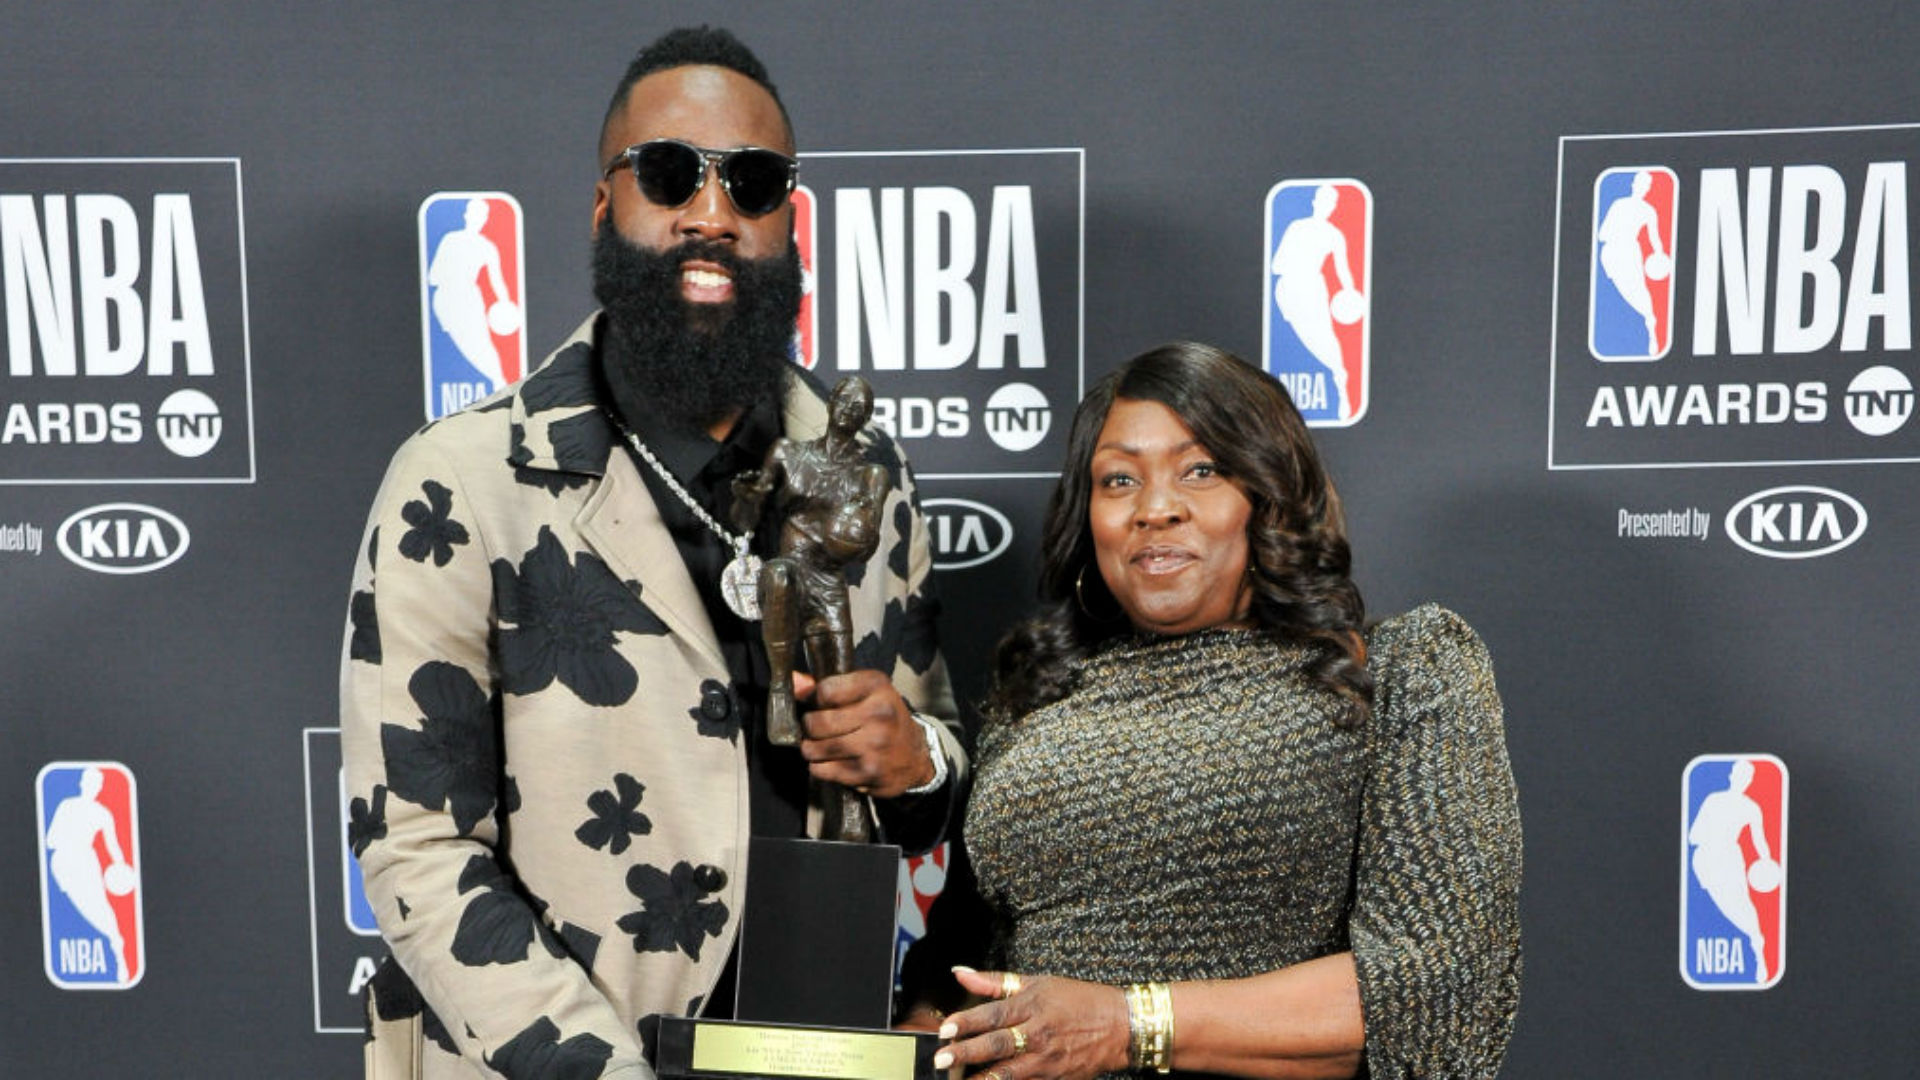 NBA Awards 2018: James Harden says 'it doesn't stop here' after being named MVP